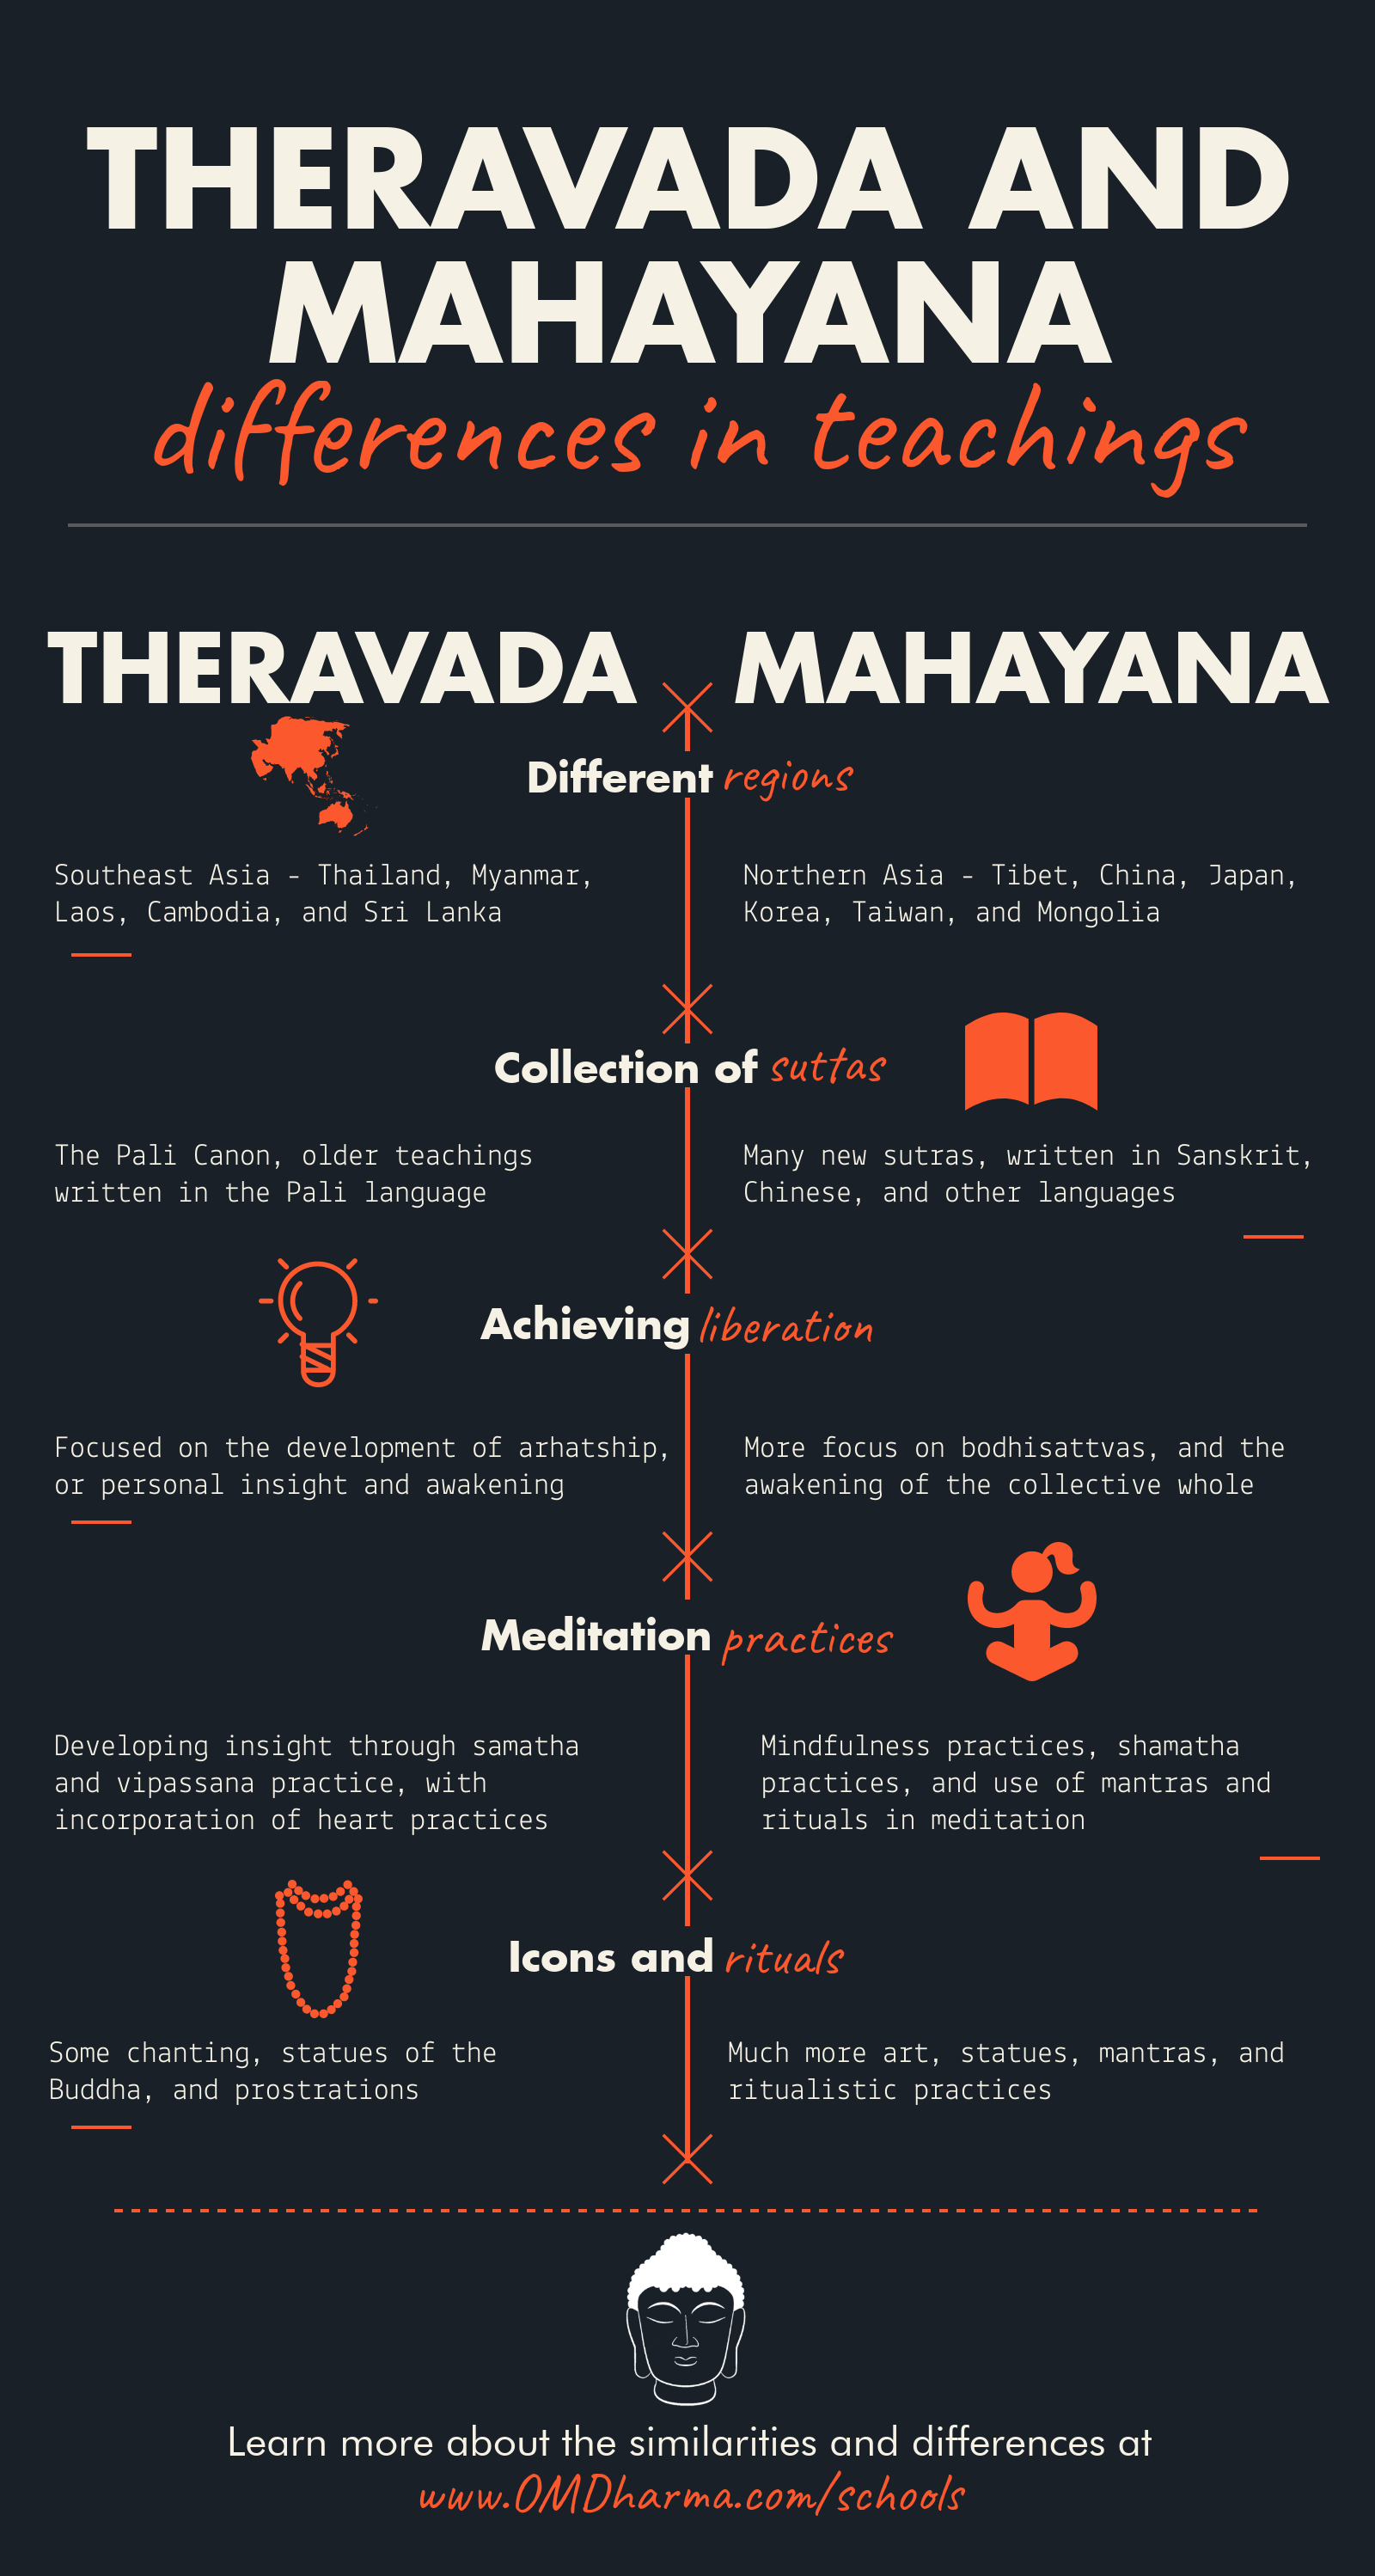 mahayana vs theravada infographic